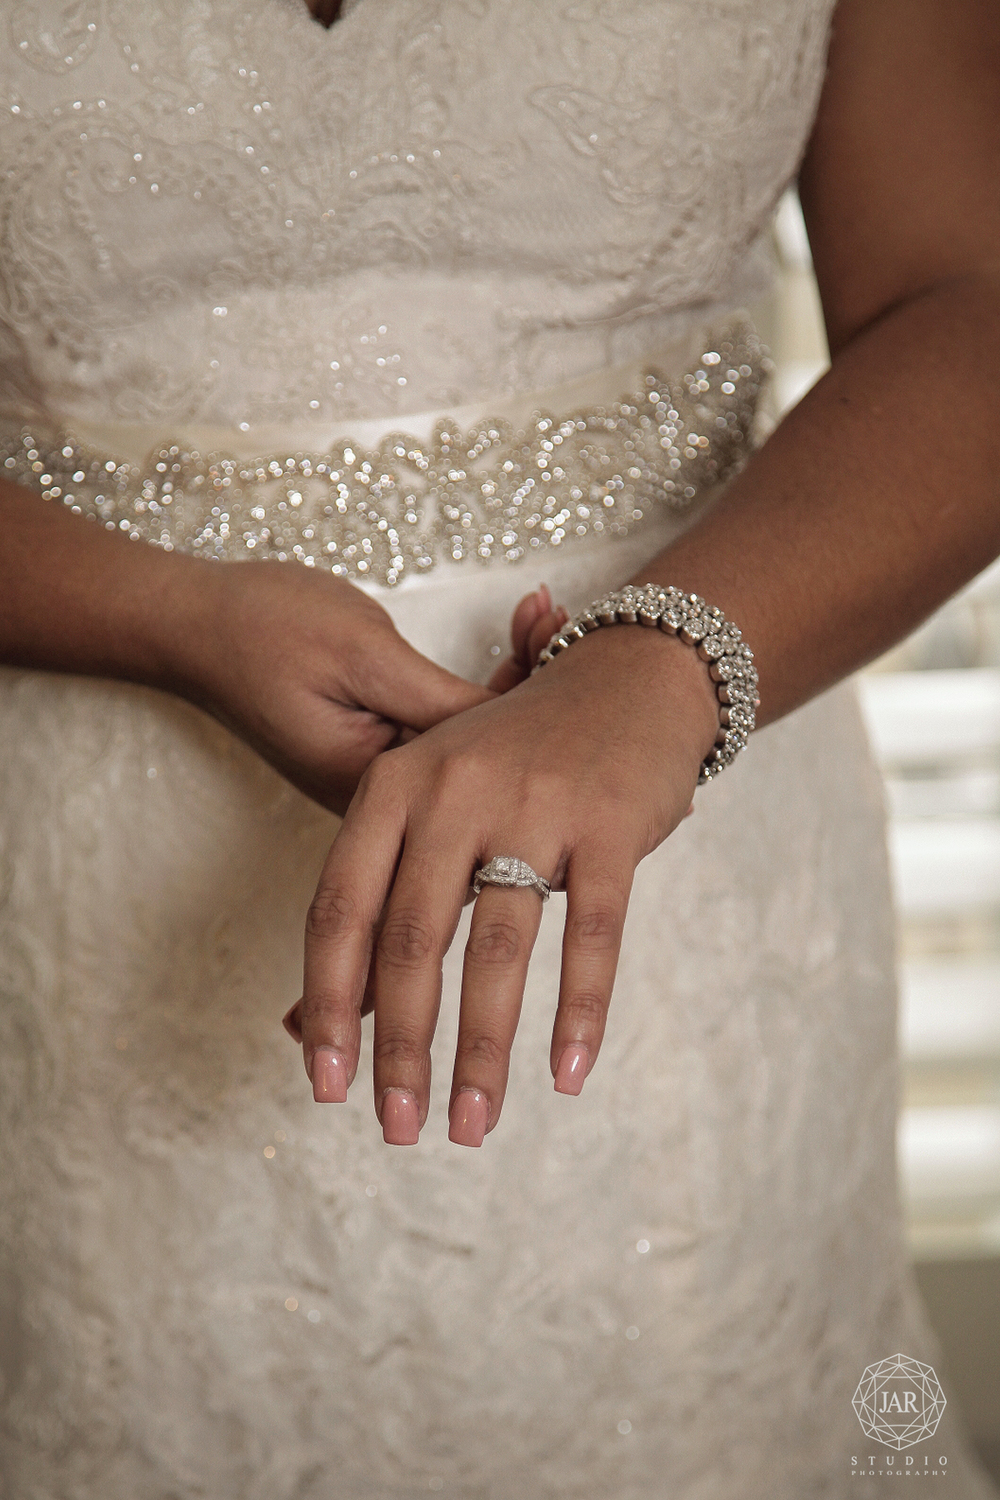 05-bride-natural-nail-color-jarstudio-orlando.JPG